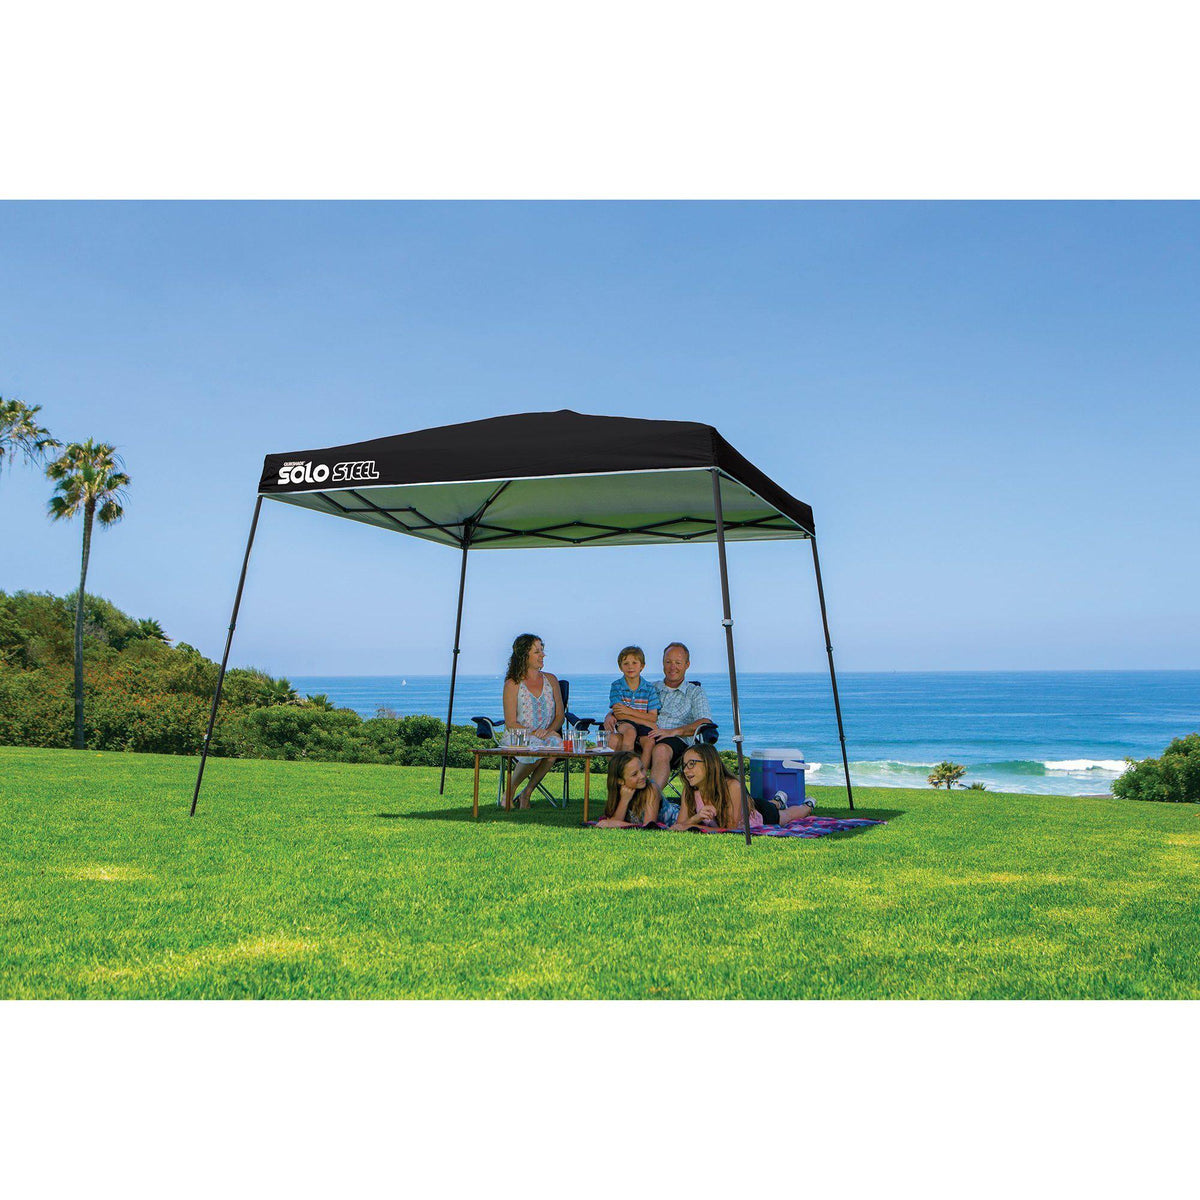 Quik Shade Solo Steel 11 x 11 ft. Slant Leg Canopy, Black